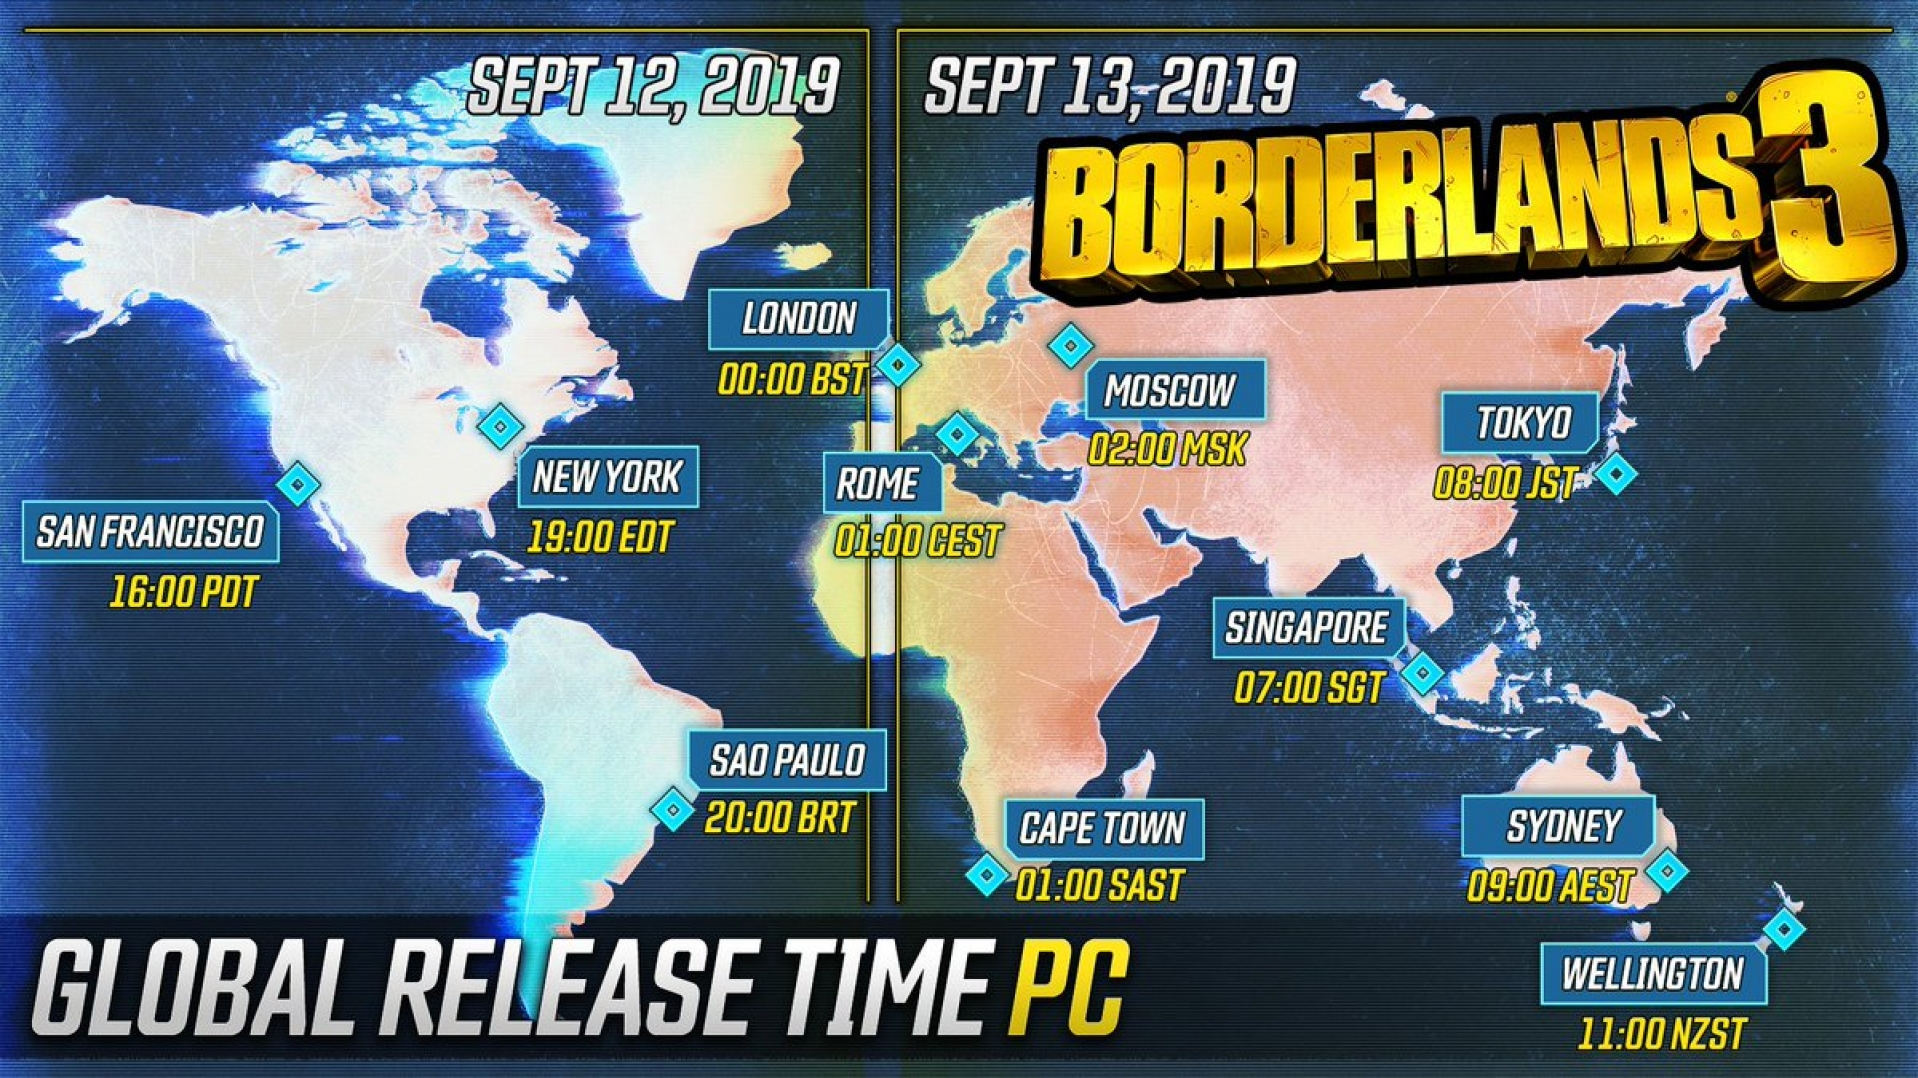 Borderlands 3 will be pre-loadable on the Epic Games Store